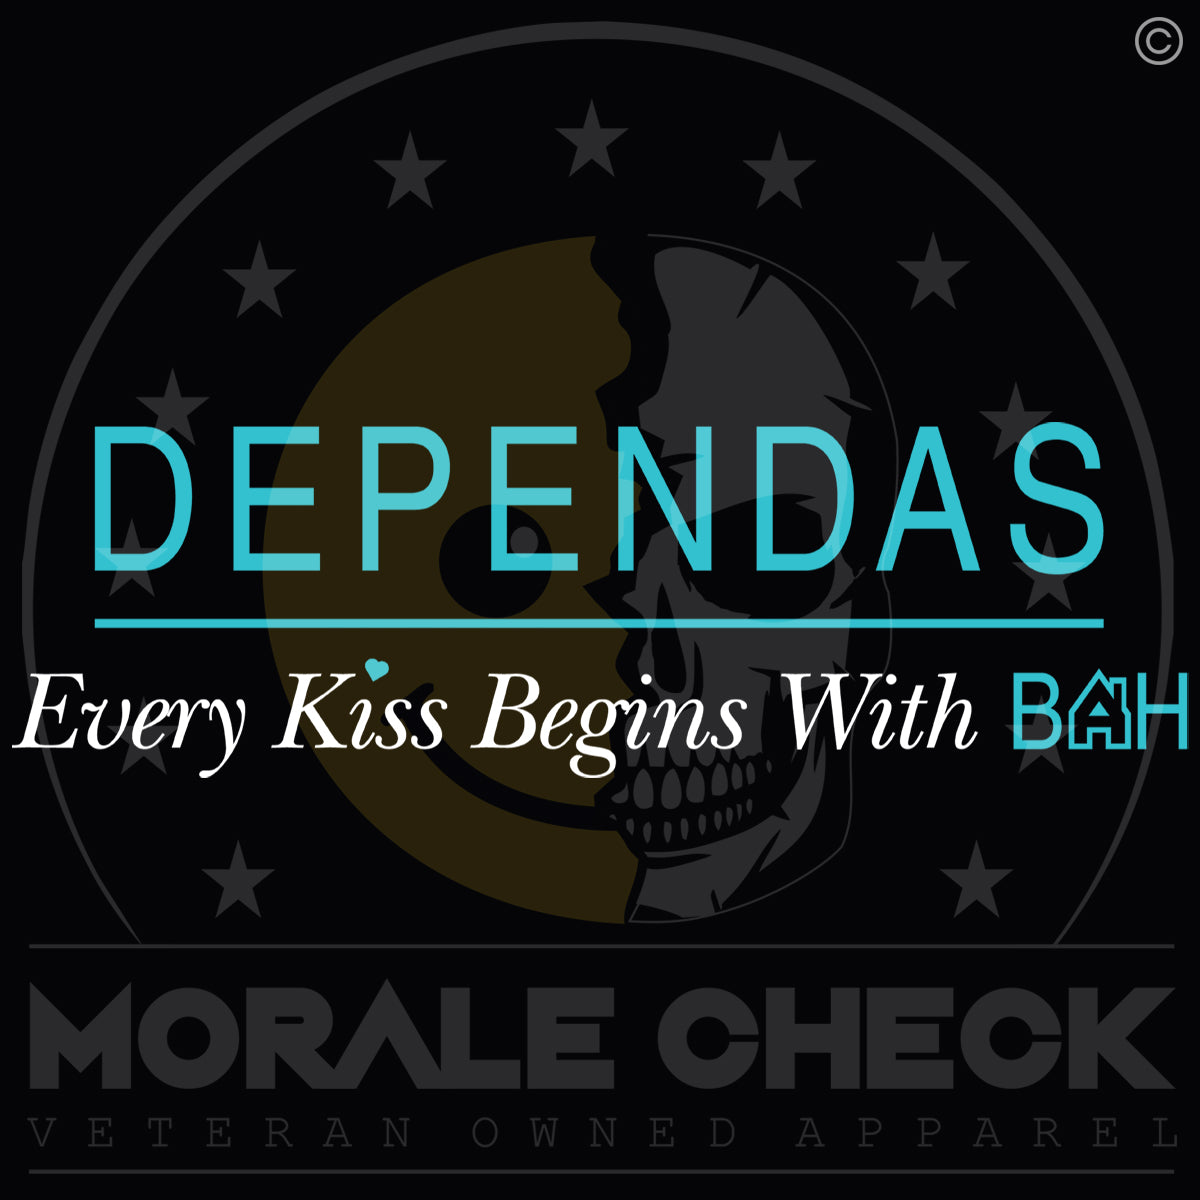 Every Kiss Begins With BAH